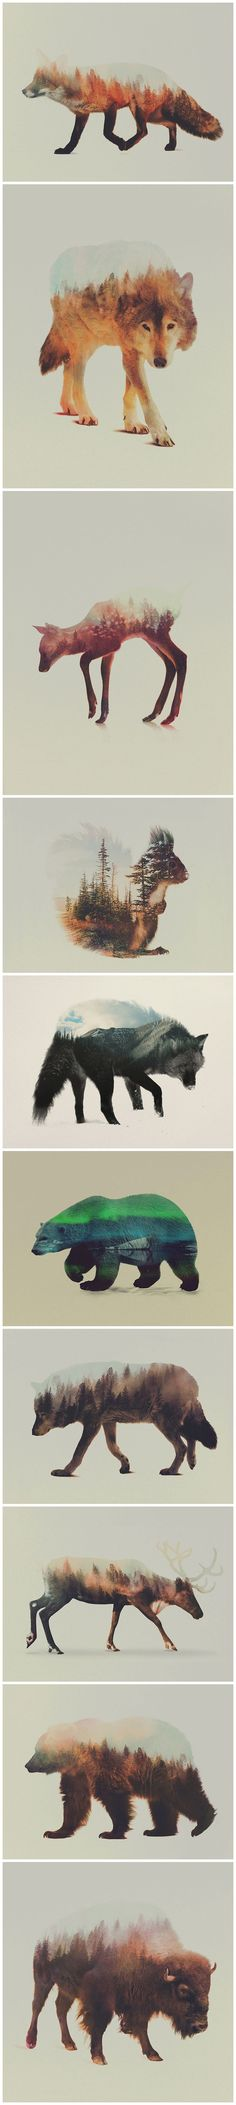 Animalscapes   Andreas Lie ~ Society 6